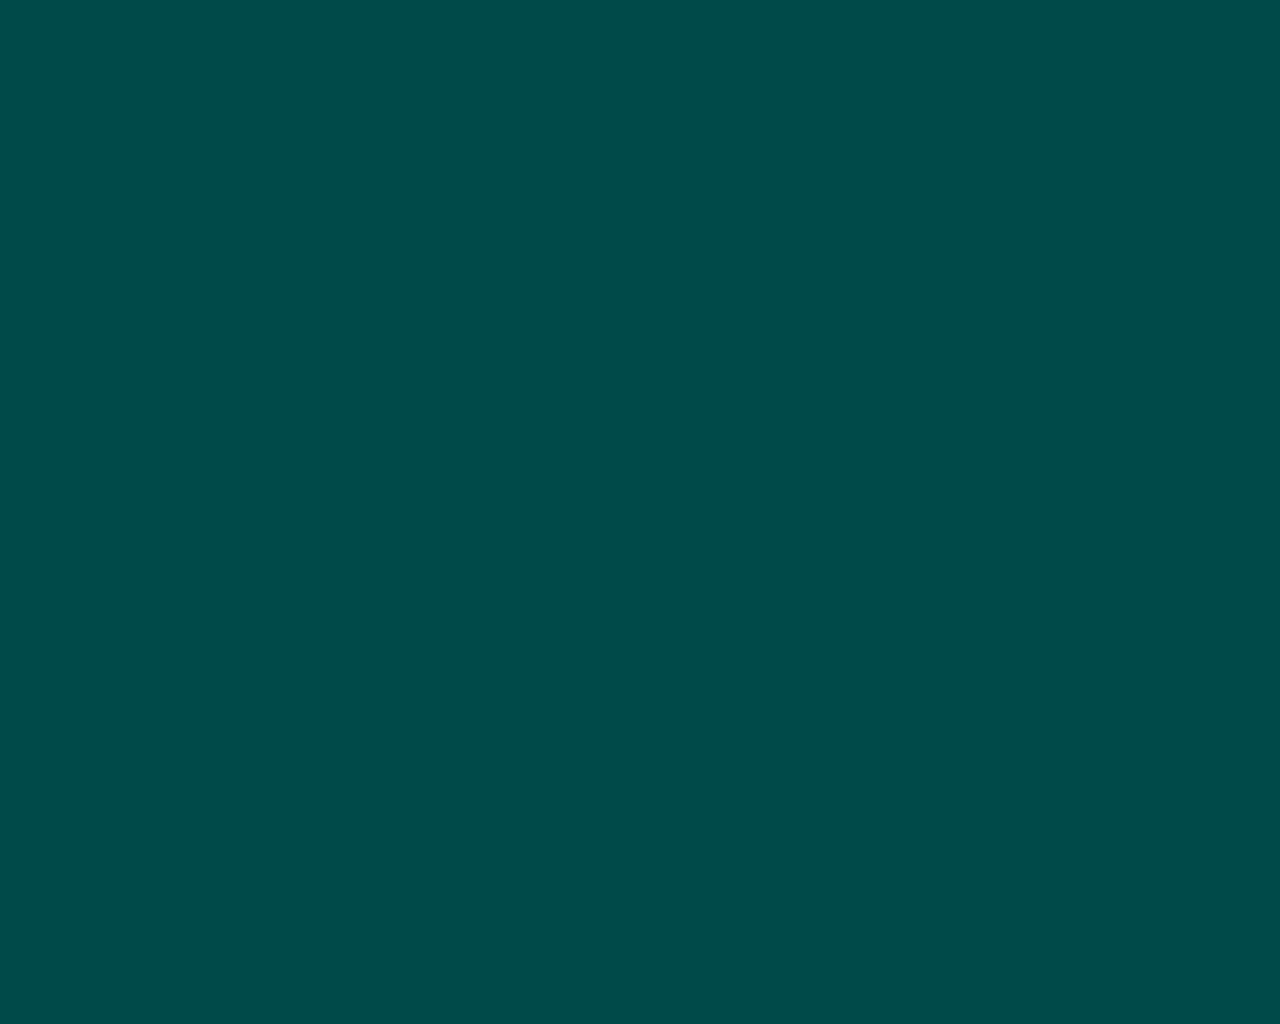 1280x1024 Deep Jungle Green Solid Color Background